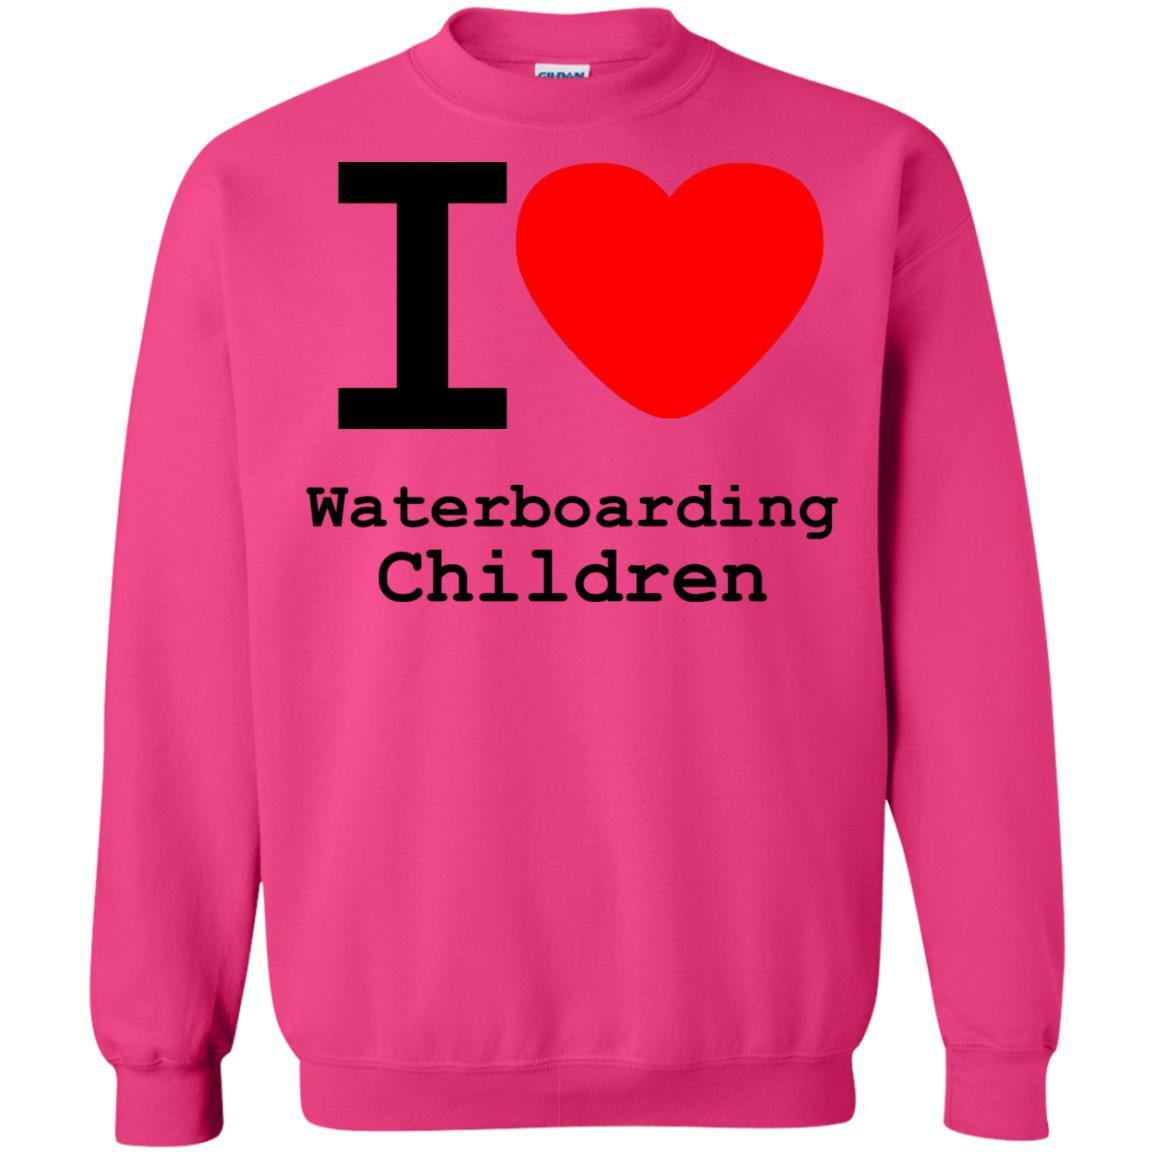 I love Waterboarding Children - Crewneck Pullover Sweatshirt Heliconia / 5XL